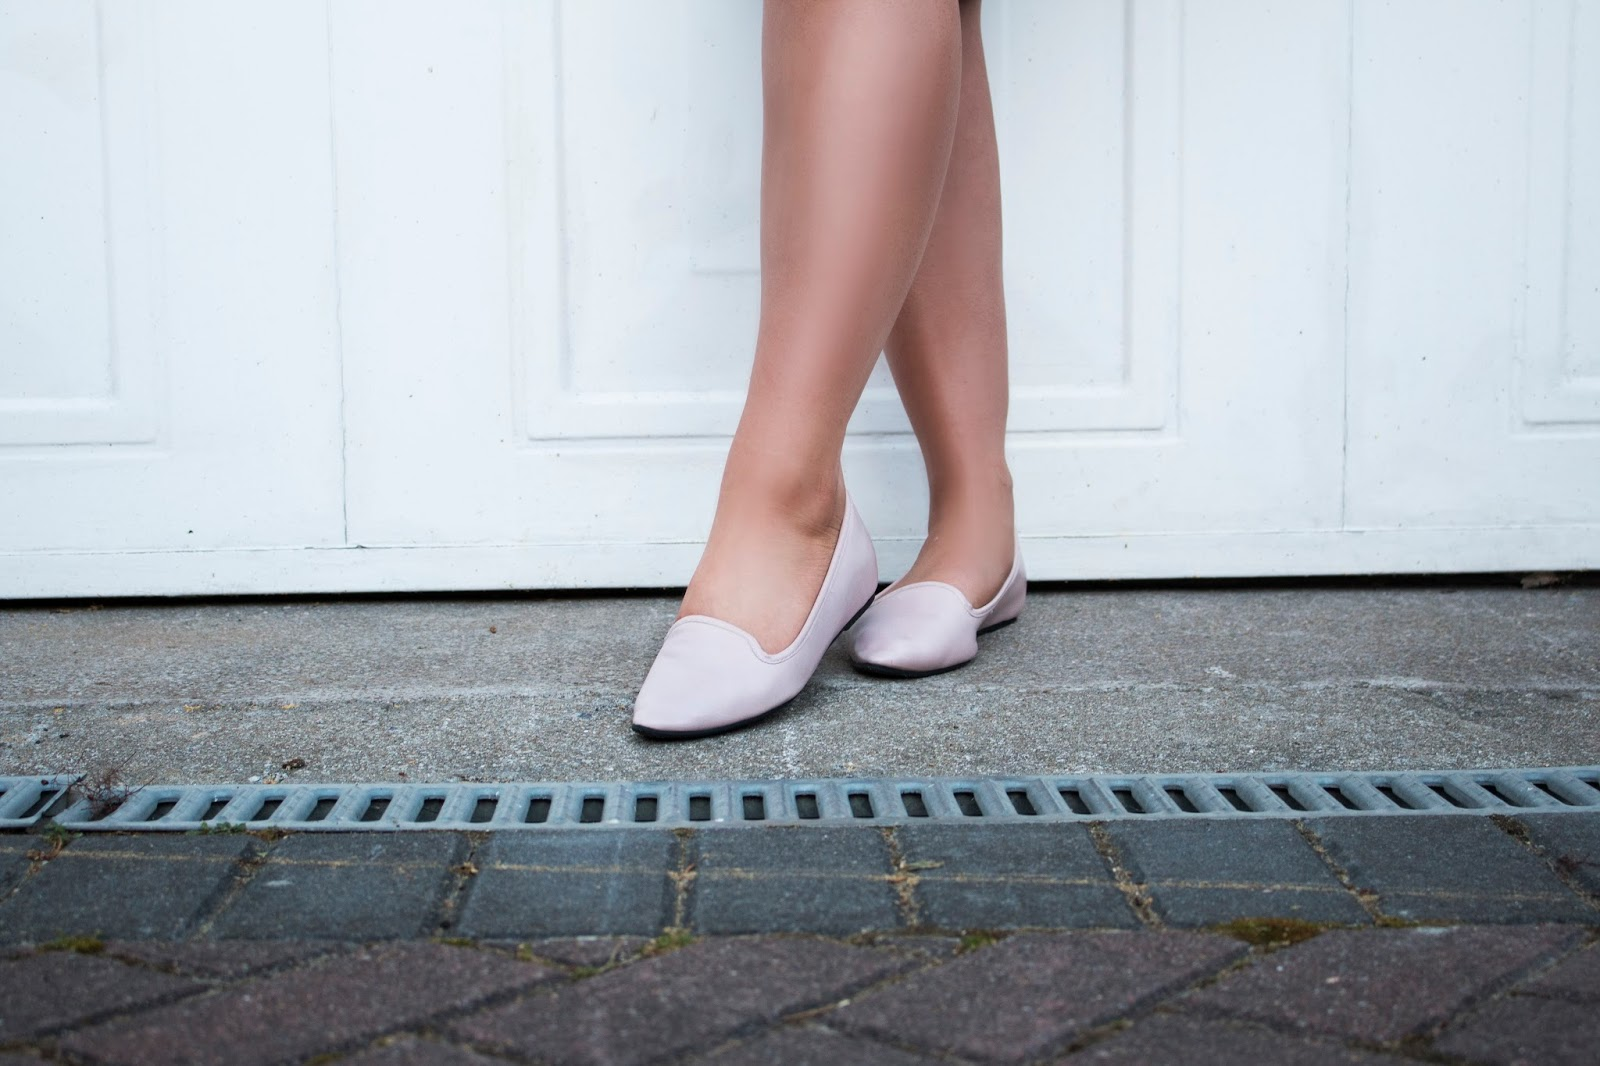 HOW TO WEAR FLAT SHOES FOR A NIGHT OUT OOTD